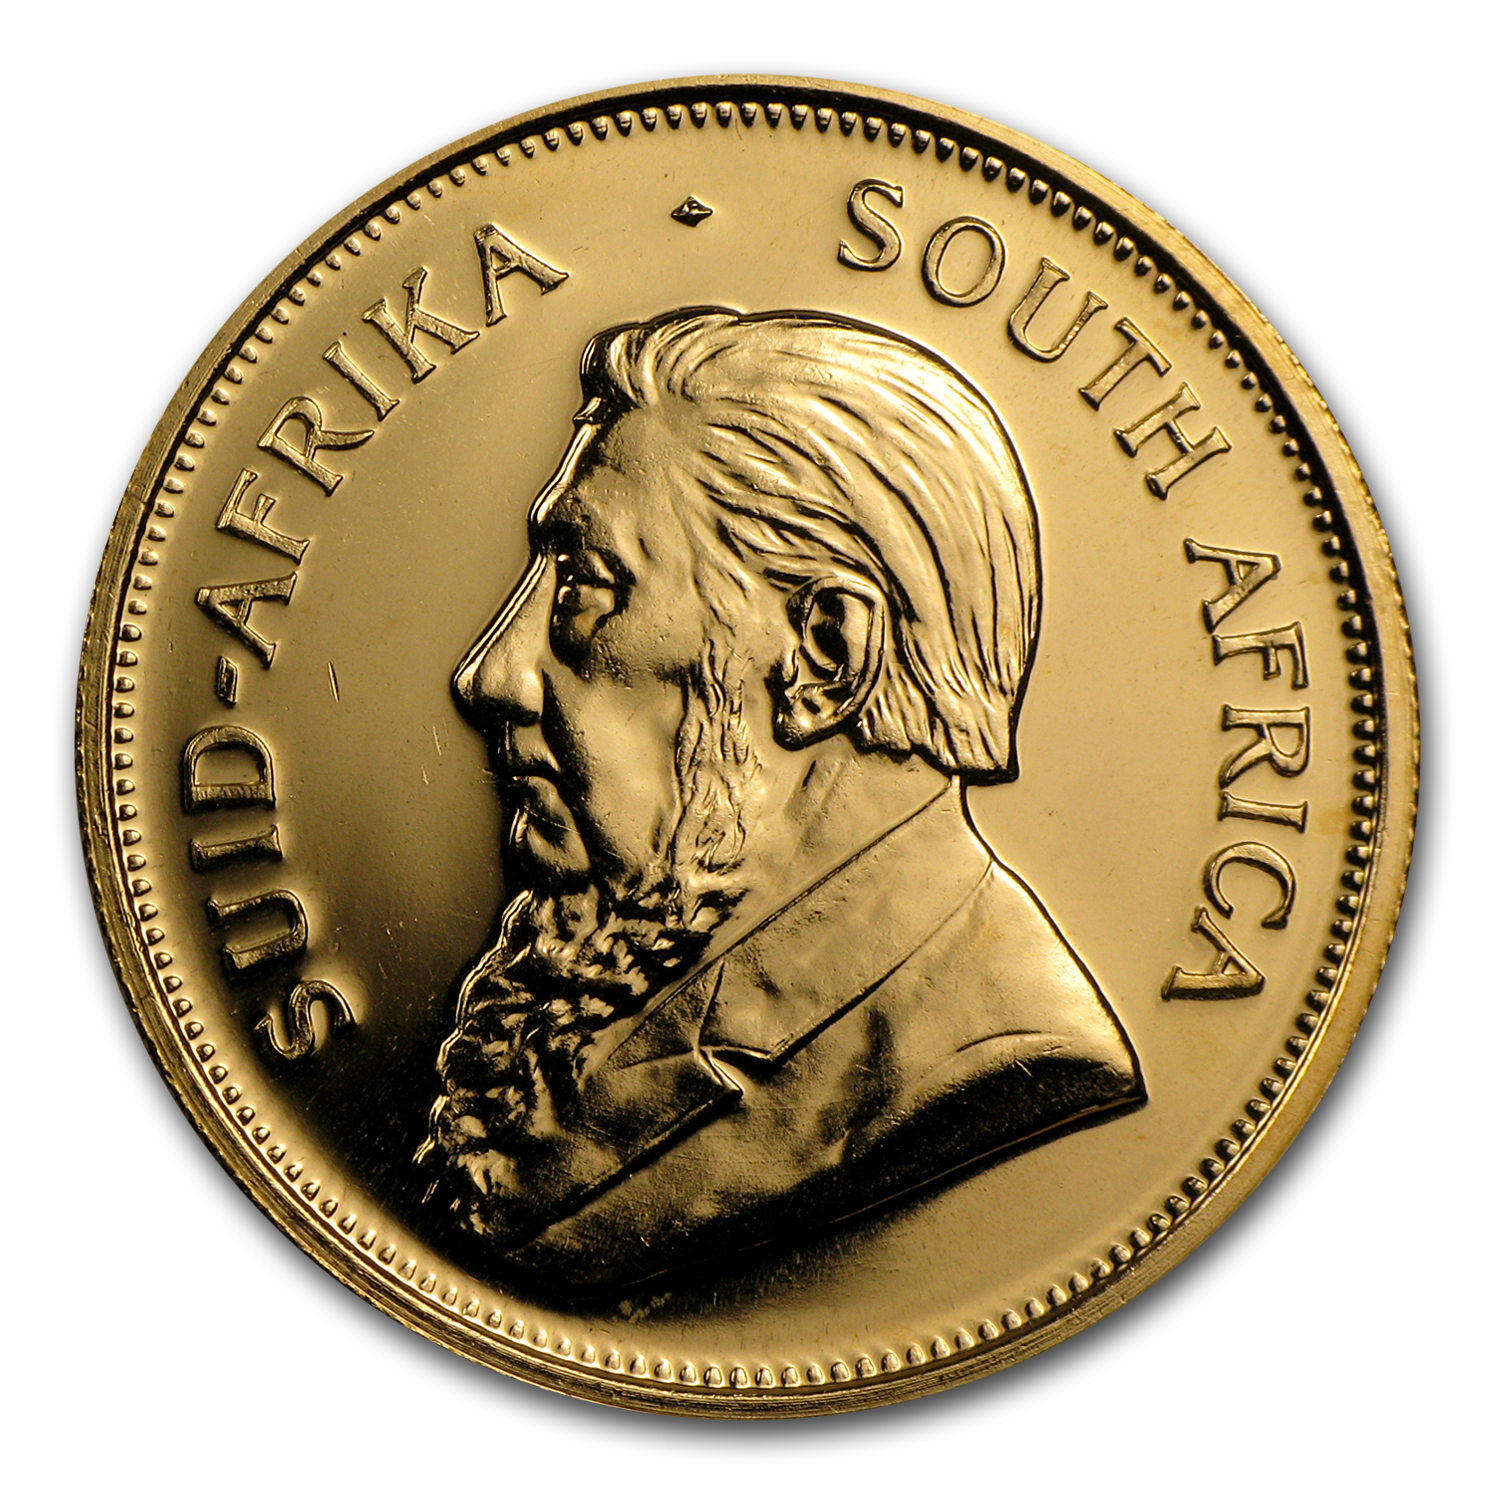 1969 1 oz Gold South African Krugerrand